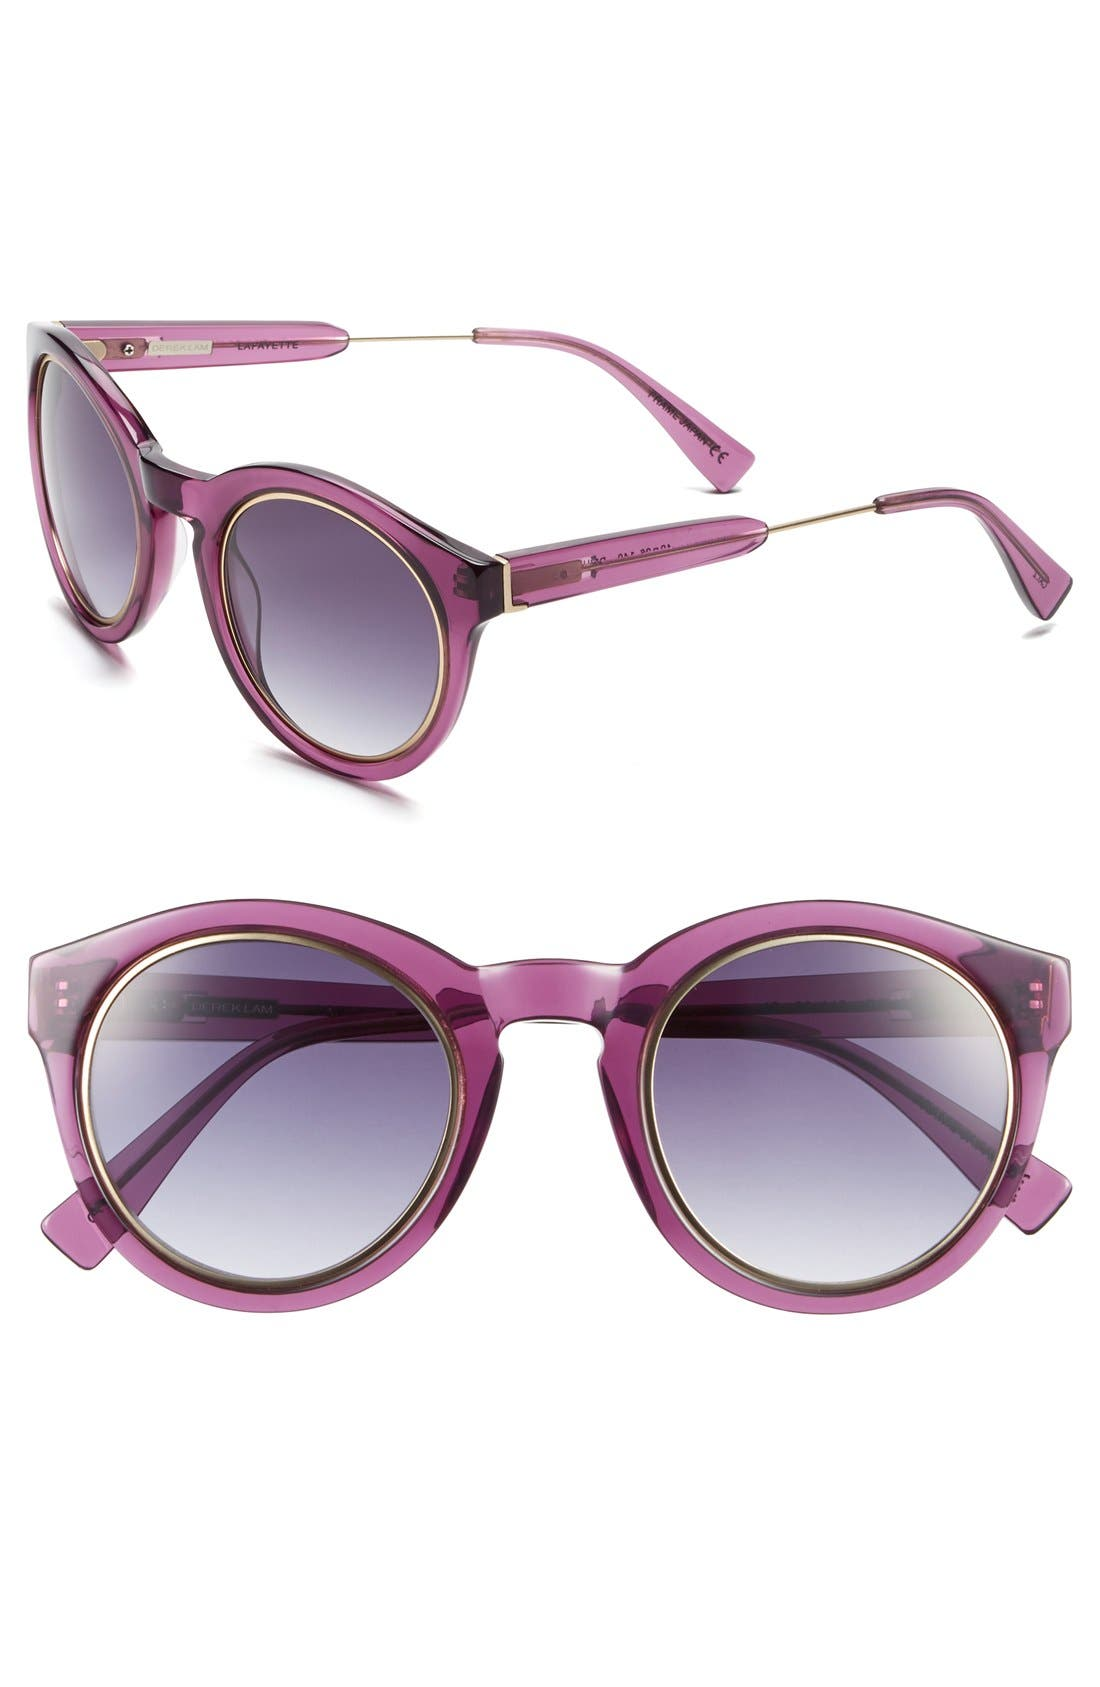 Main Image - Derek Lam 'Lafayette' 49mm Sunglasses